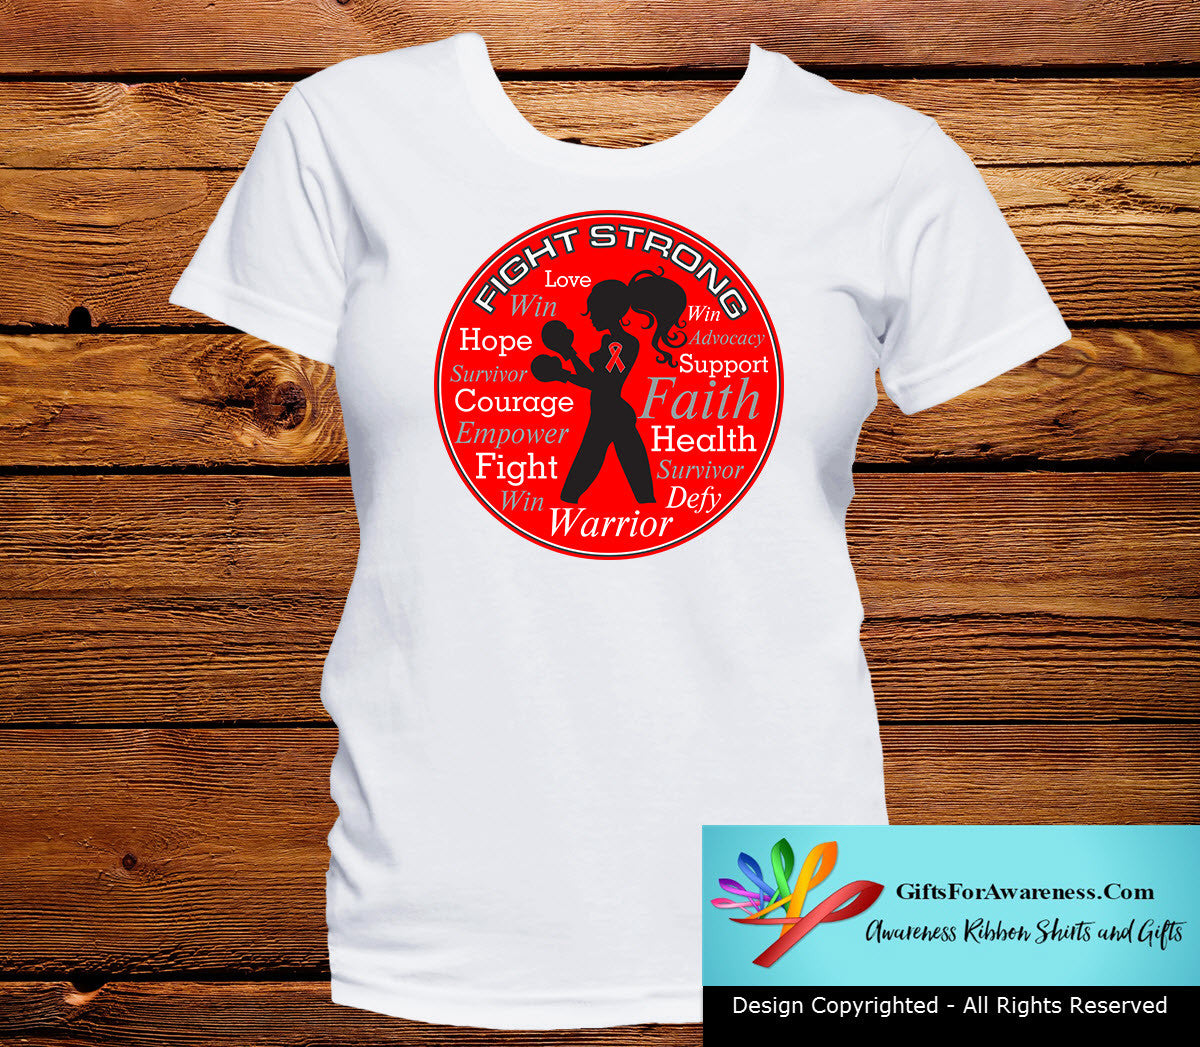 Hemophilia Fight Strong Motto T-Shirts - GiftsForAwareness